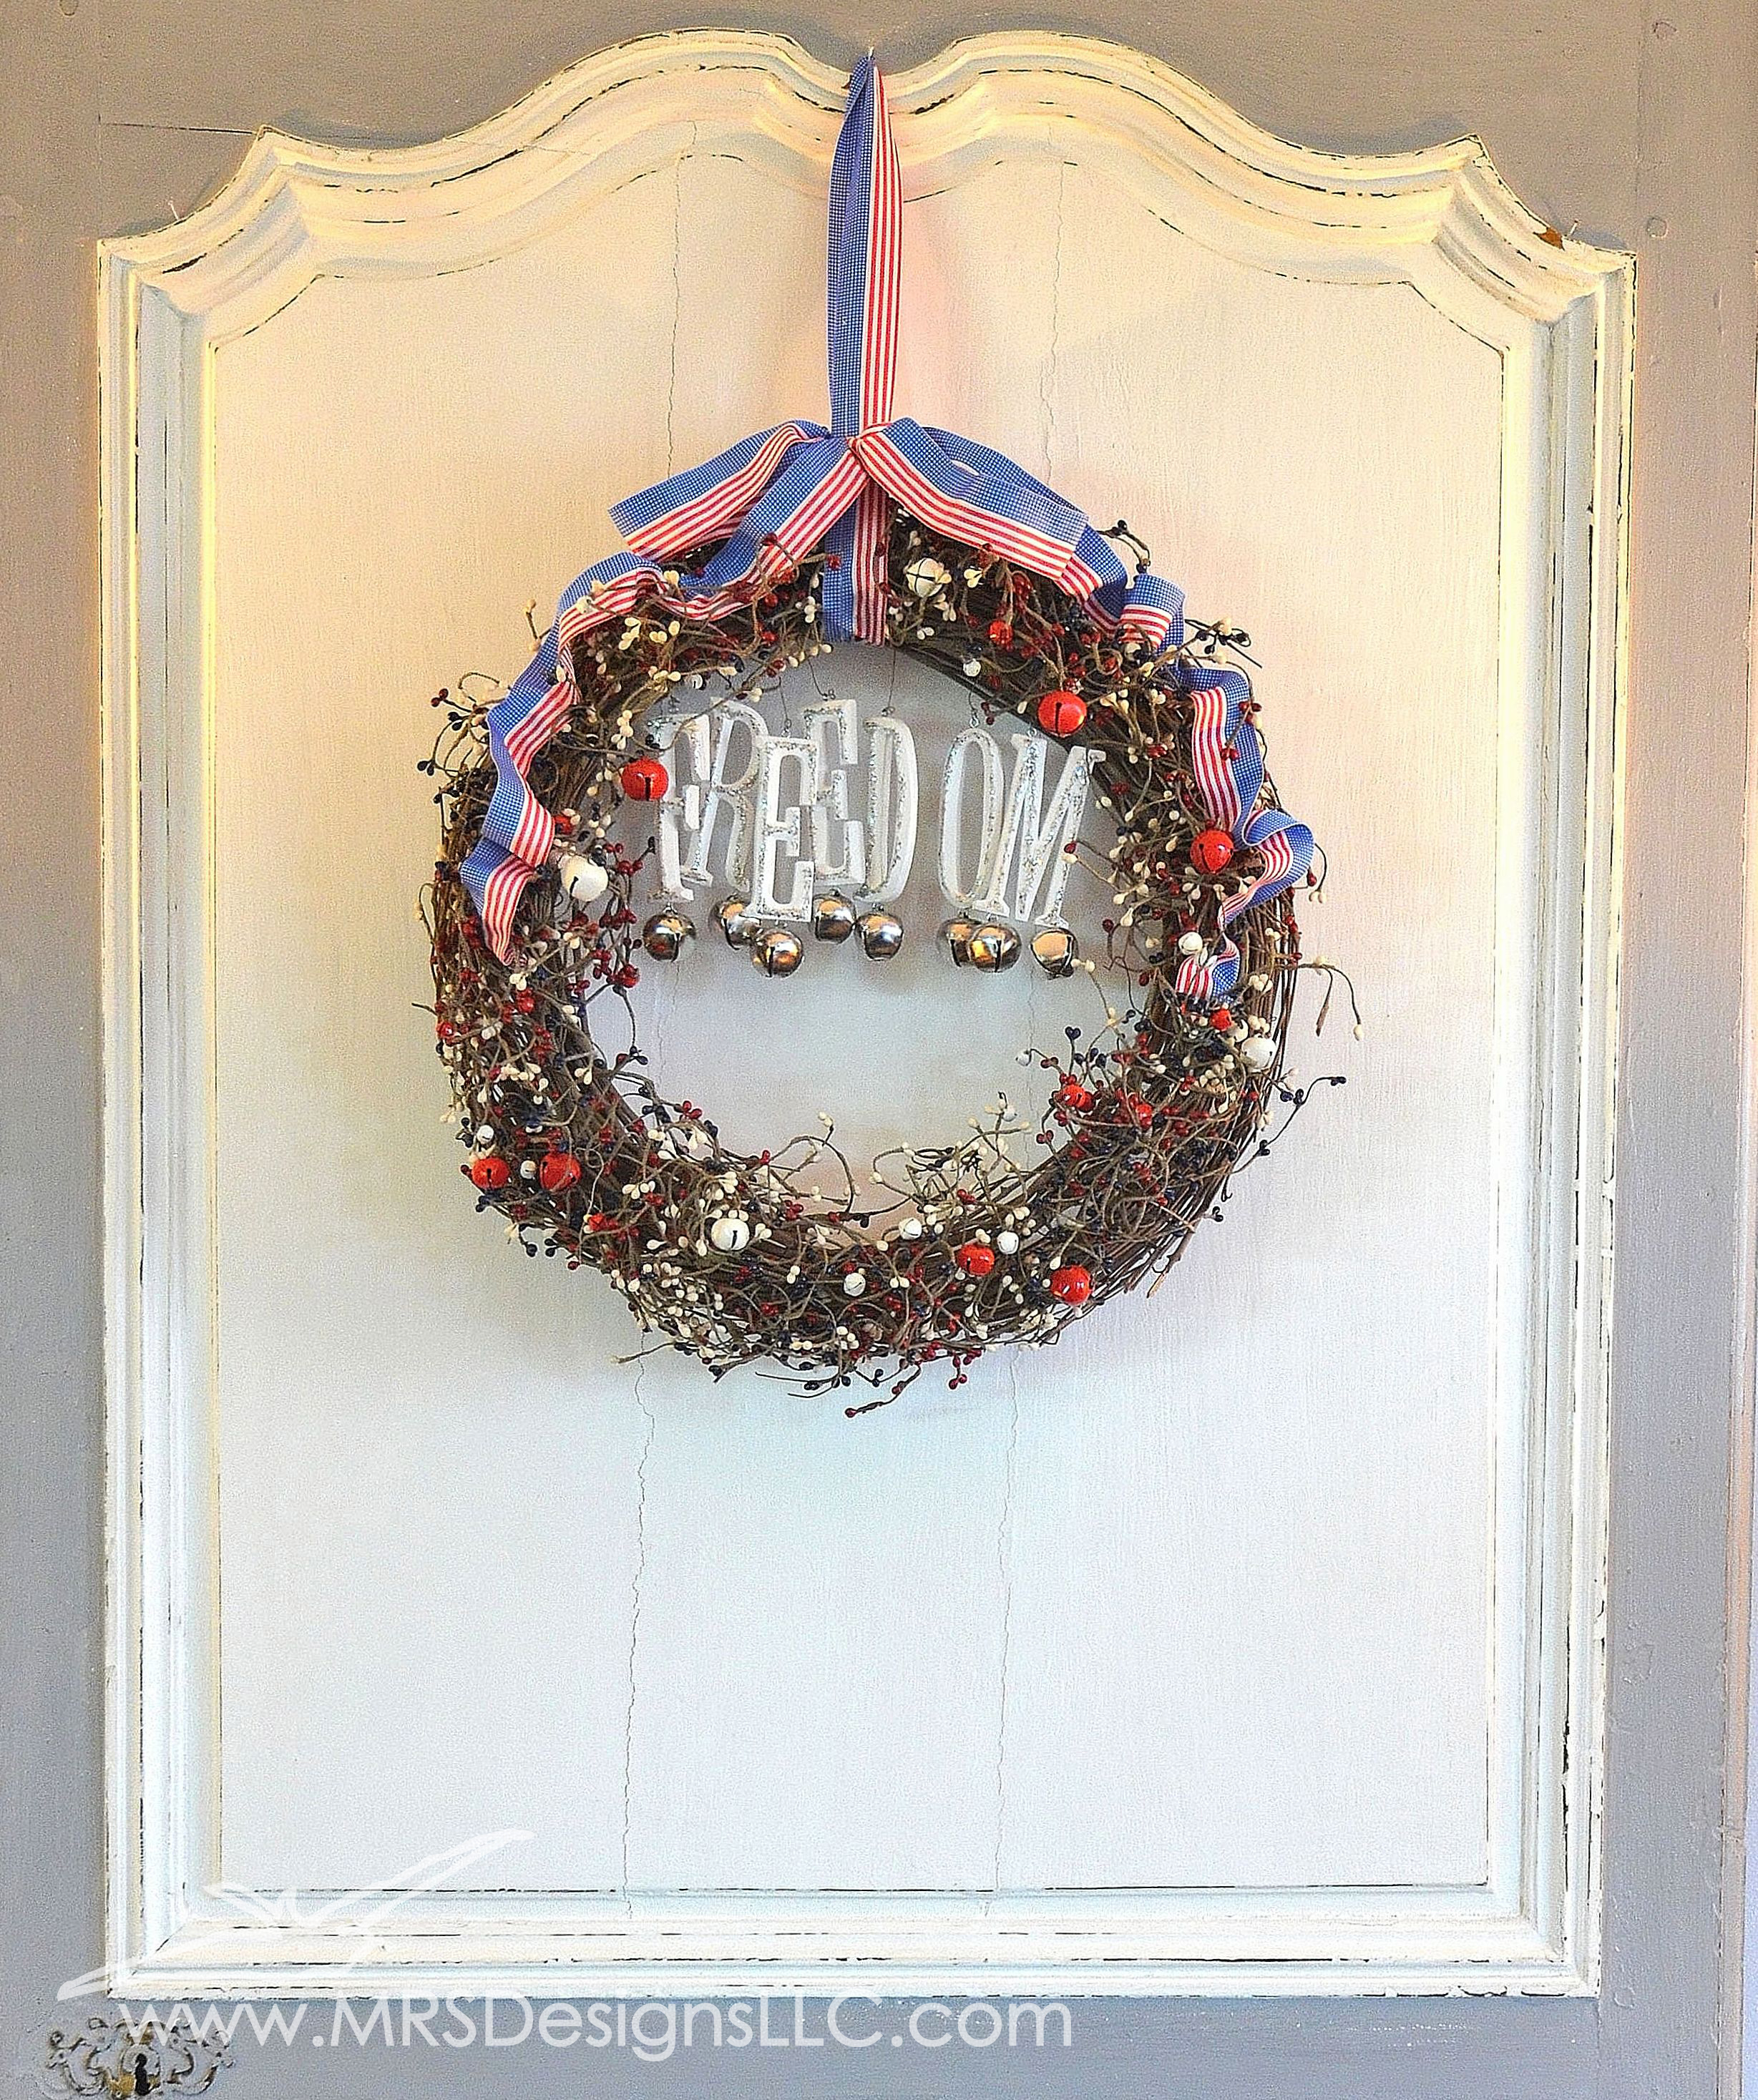 MRS Designs Blog - Refinishing a Vintage Door, Decorating for the Fourth of July